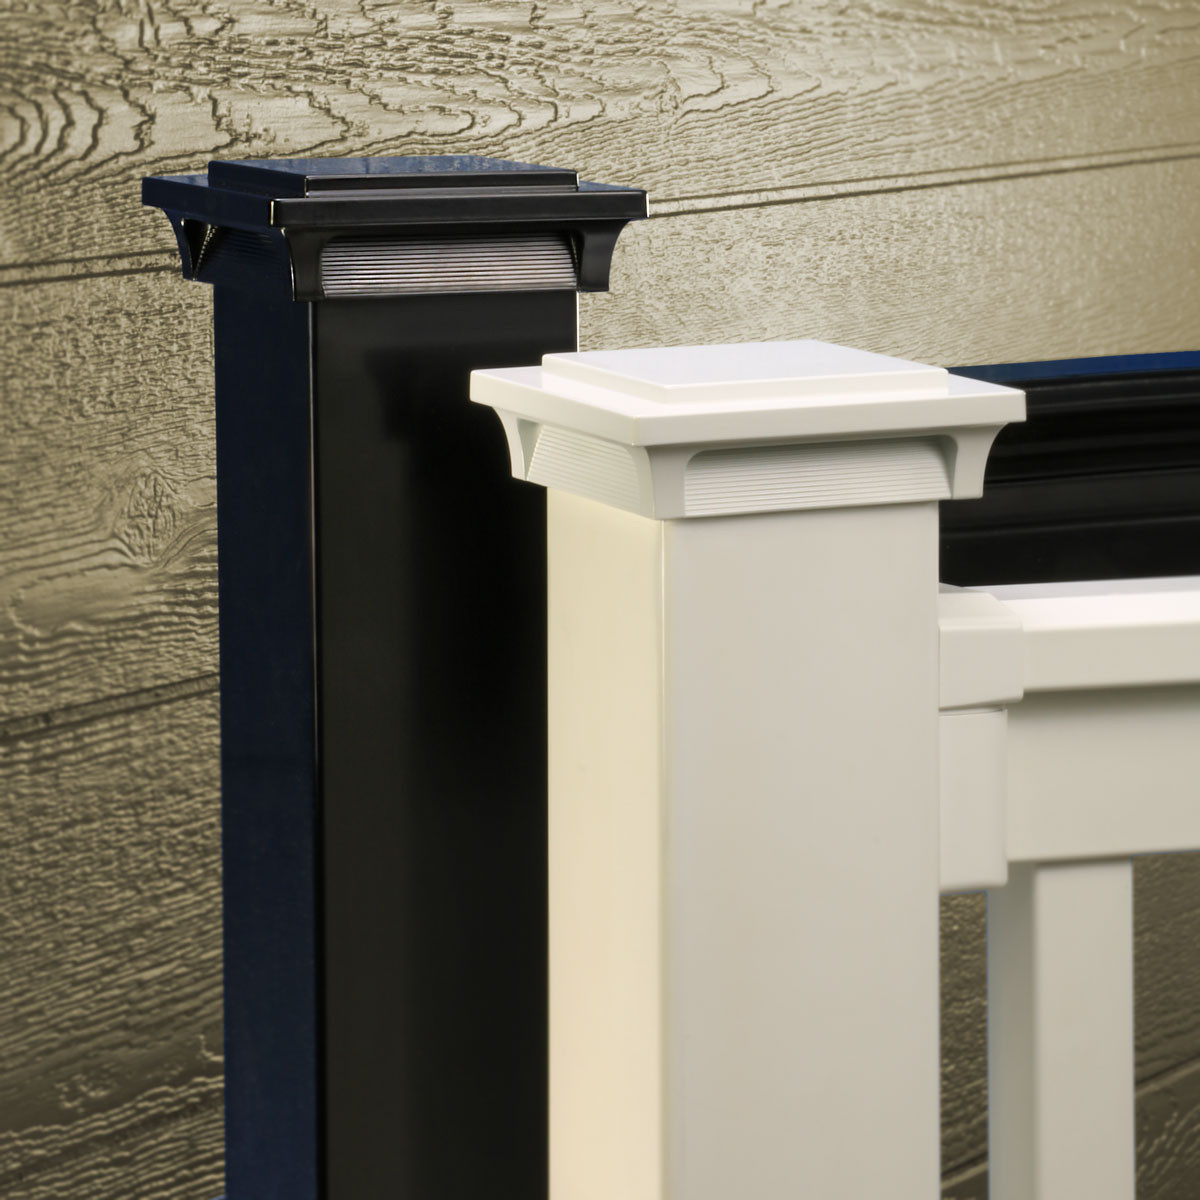 Give your deck a polished effect day in and day out with the Deckorators ALX Pro Luna Post Cap Light in Black or White.